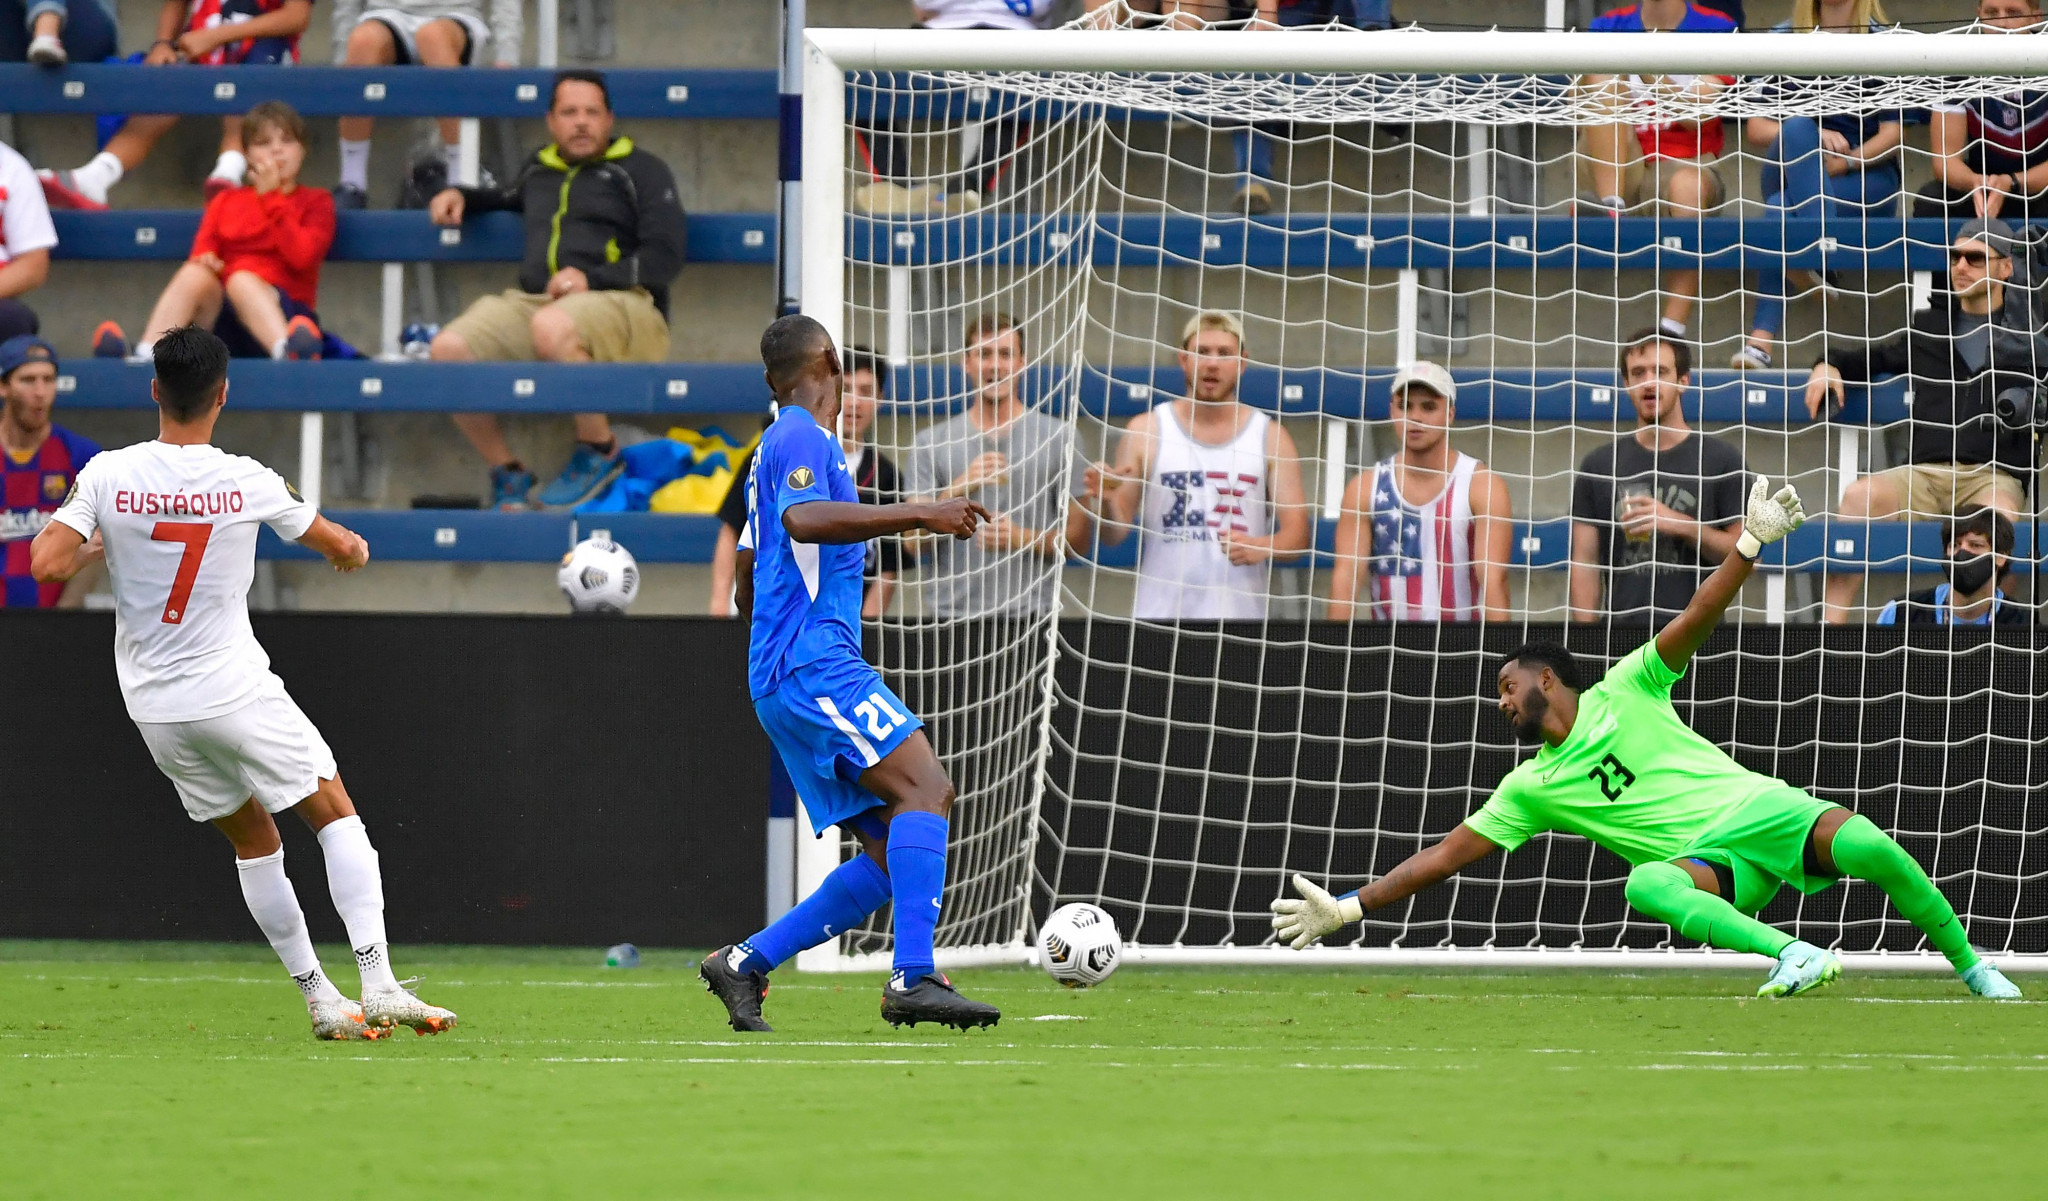 Canada came from a goal down to beat Martinique 4-1 in the earlier match at Children's Mercy Park in Kansas City ©Getty Images